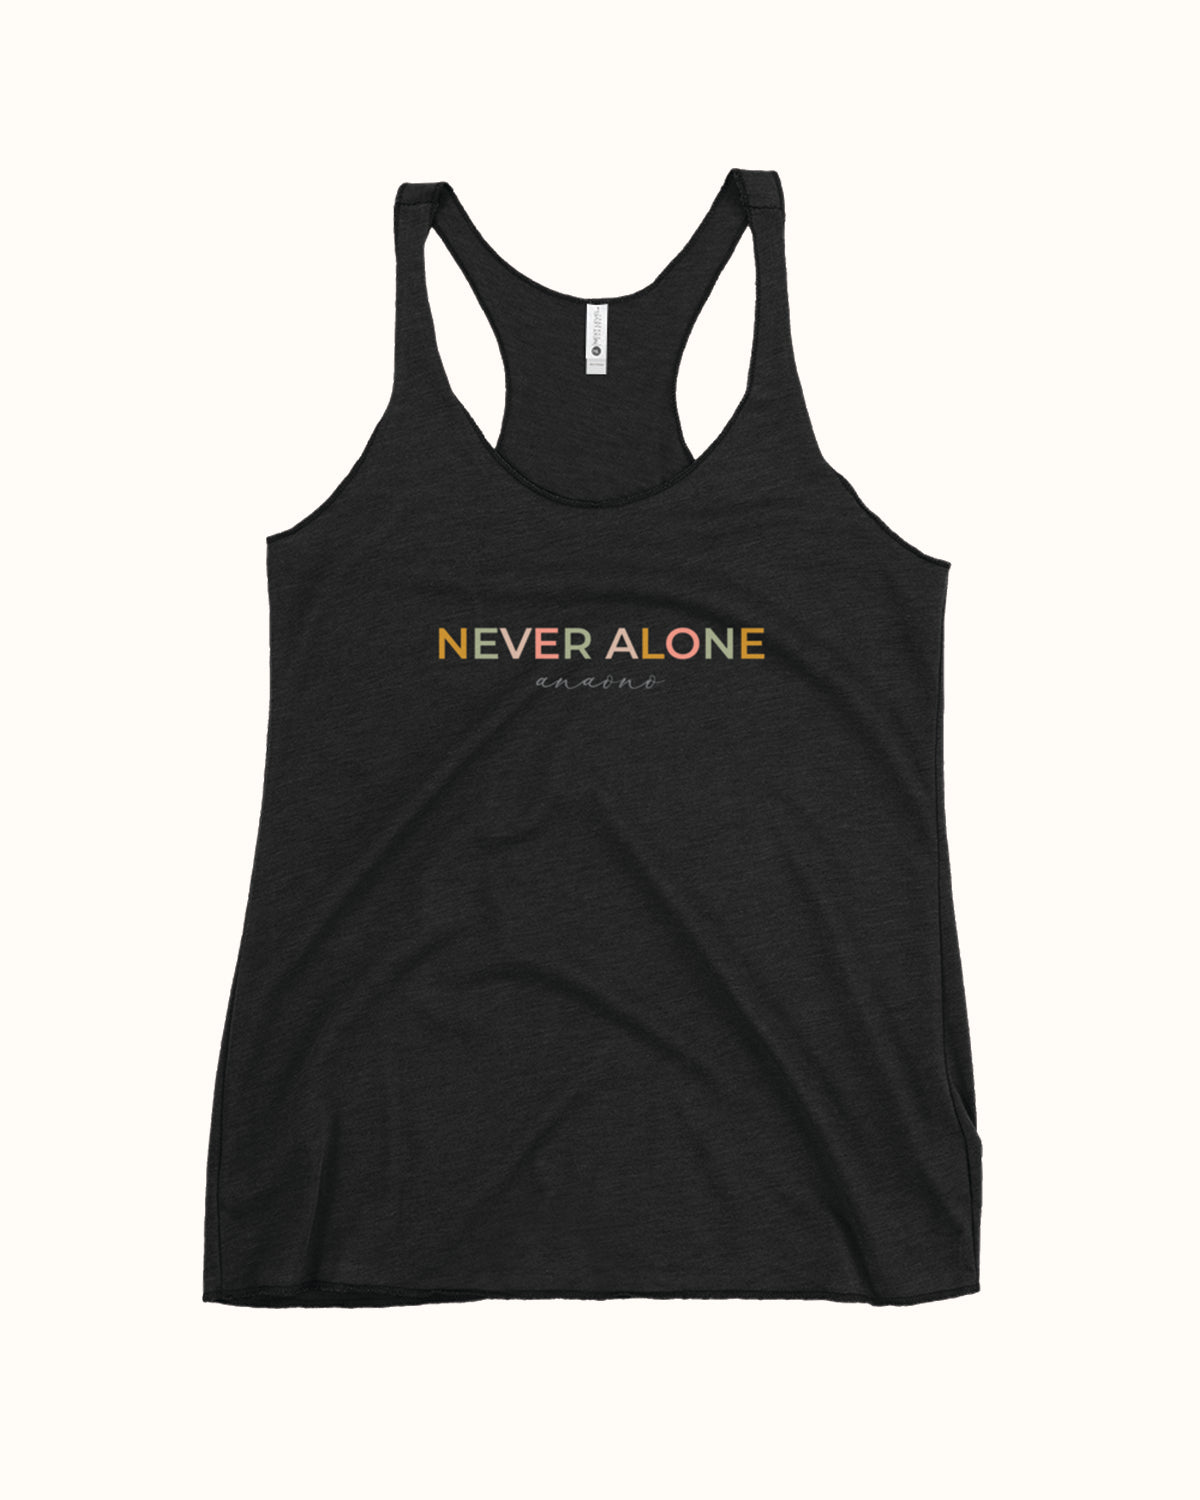 Black, limited edition racerback tank with Never Alone® AnaOno spelt across chest in multi color.